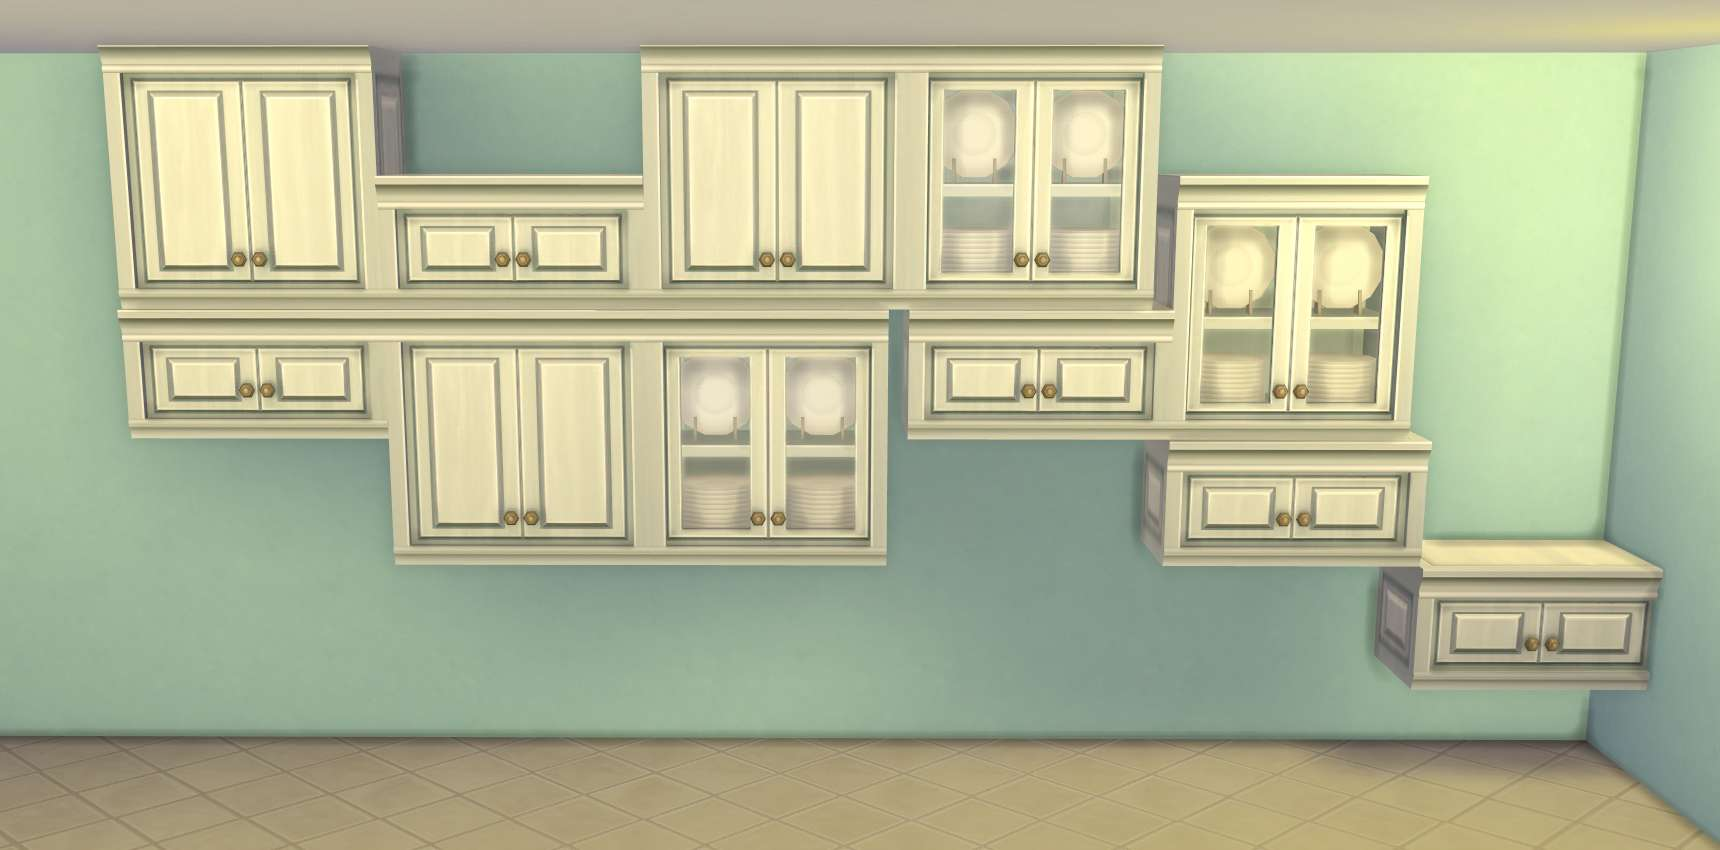 Sims 4 Building How Tou0027s: Tiling Cabinets